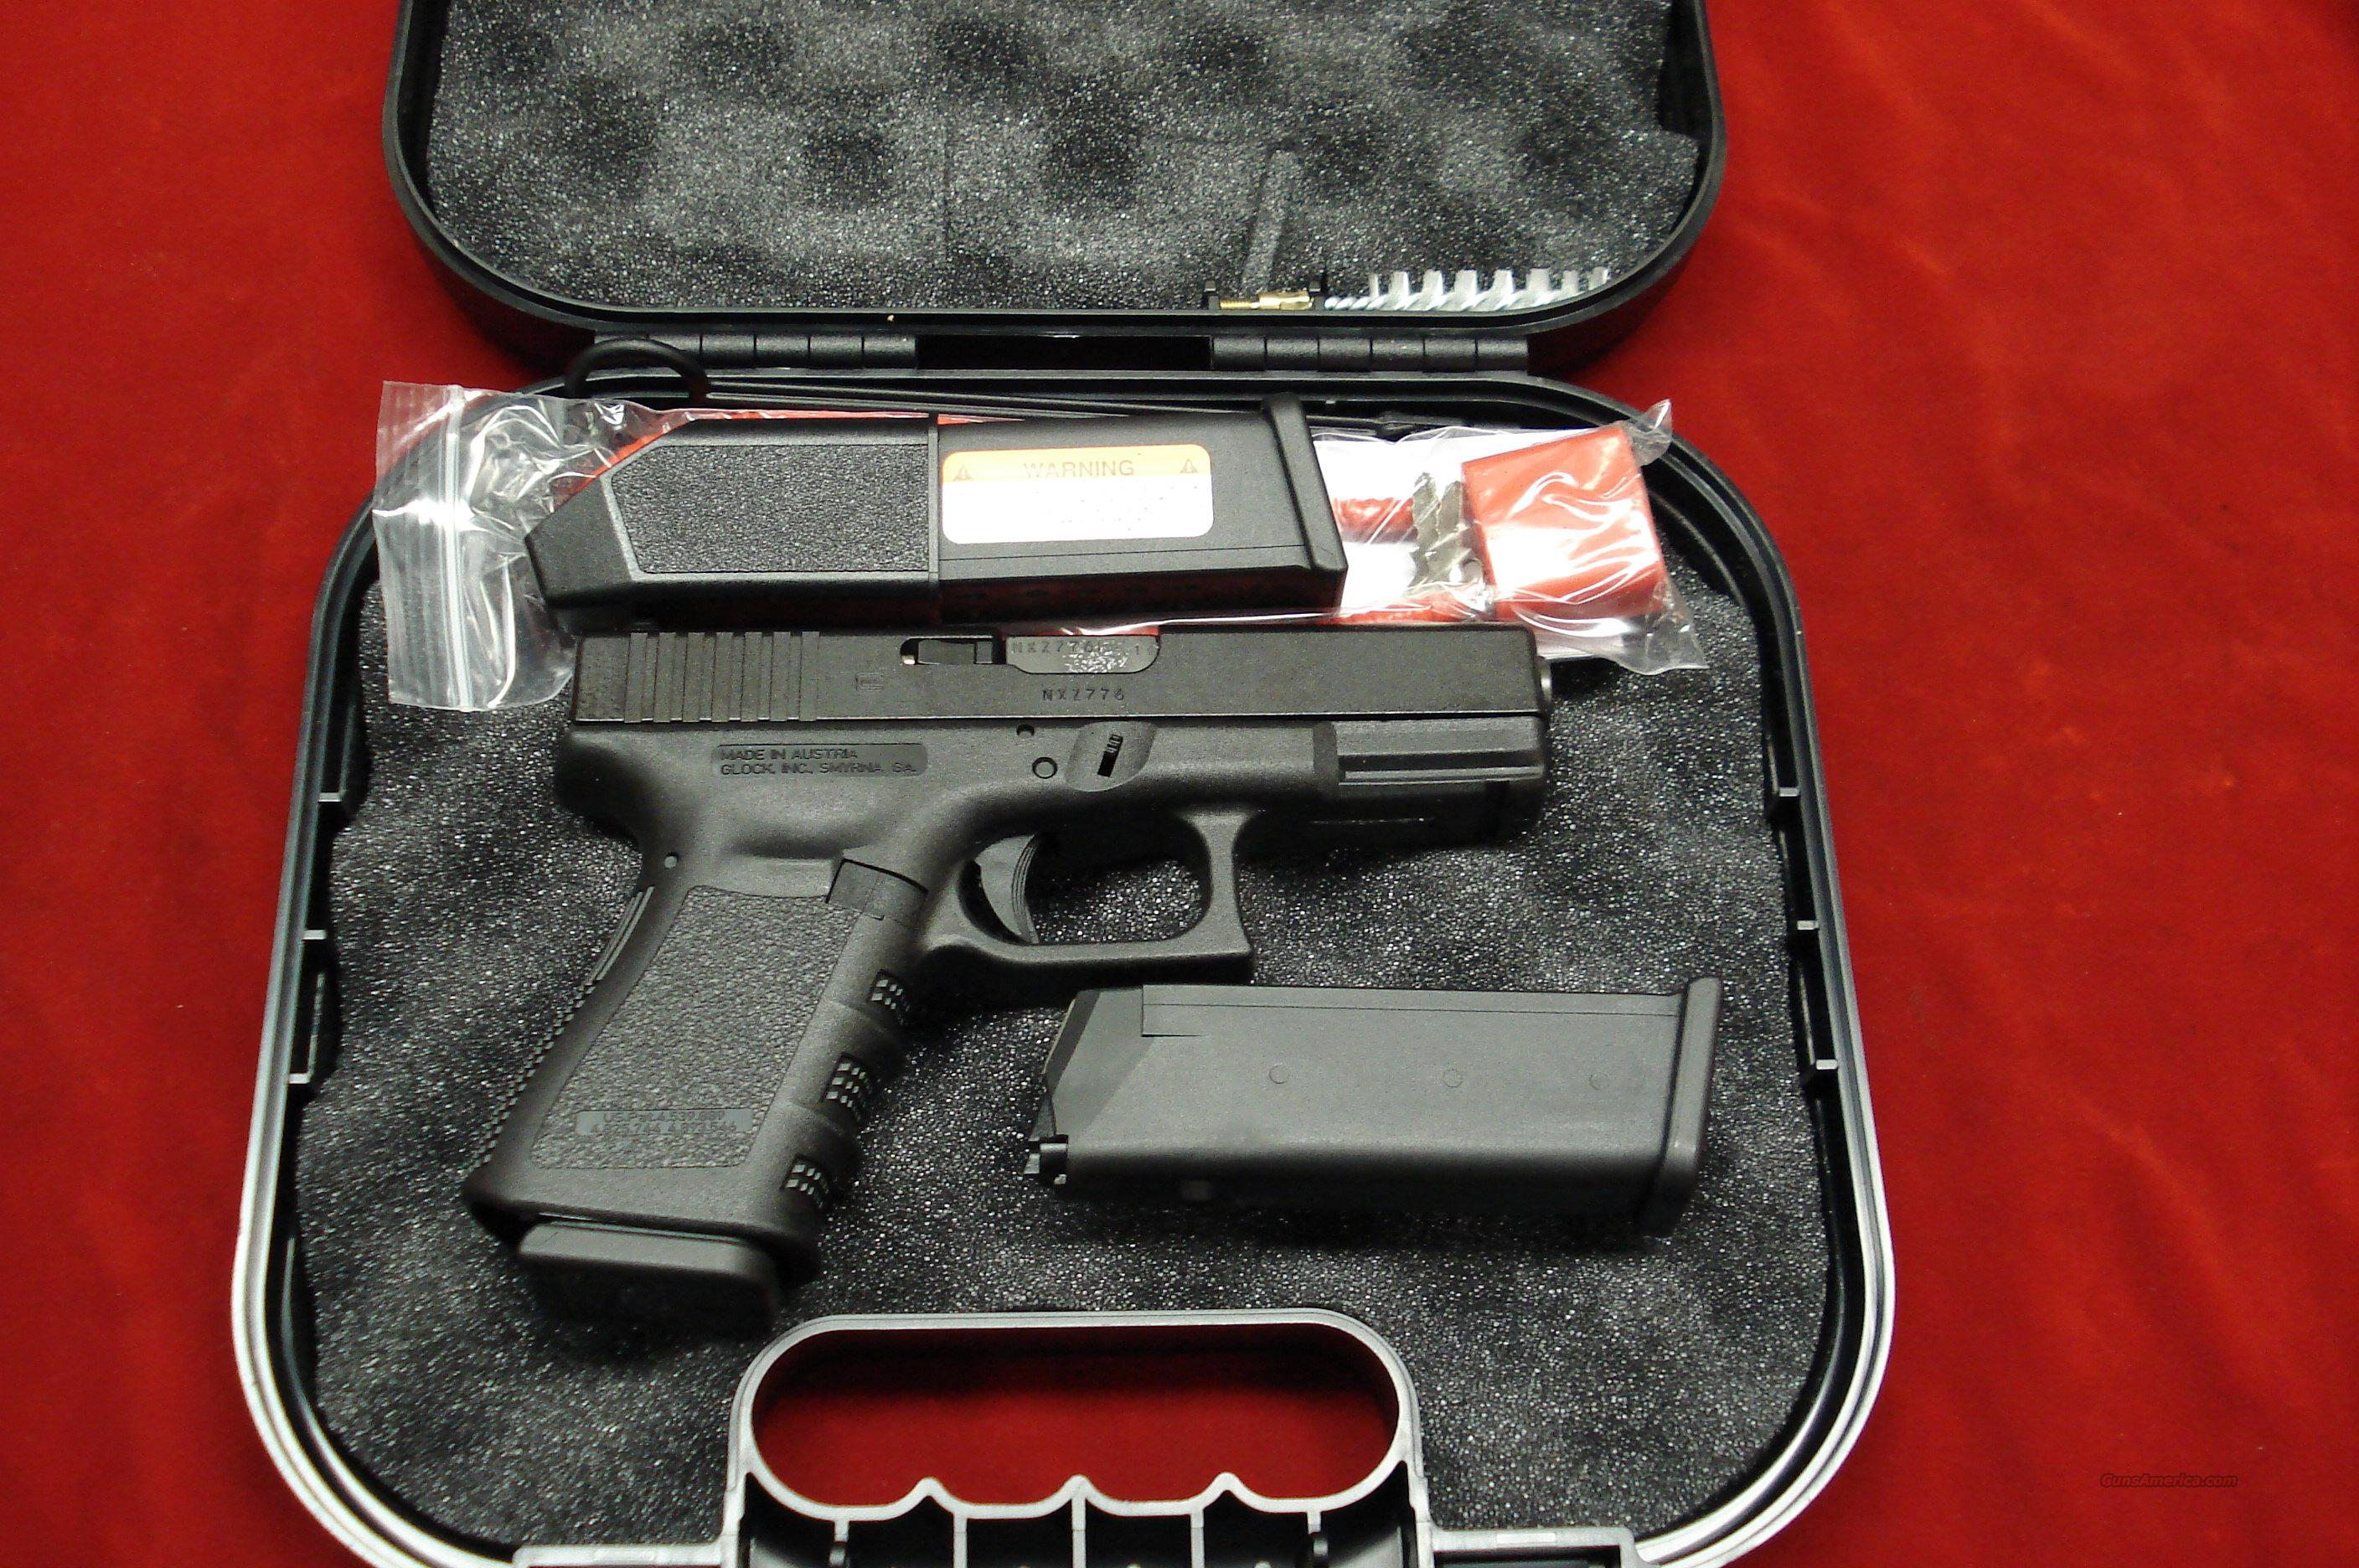 GLOCK MODEL 19 9MM CAL. WITH 3 FACTORY HIGH CAP MAGAZINES NEW  Guns > Pistols > Glock Pistols > 19